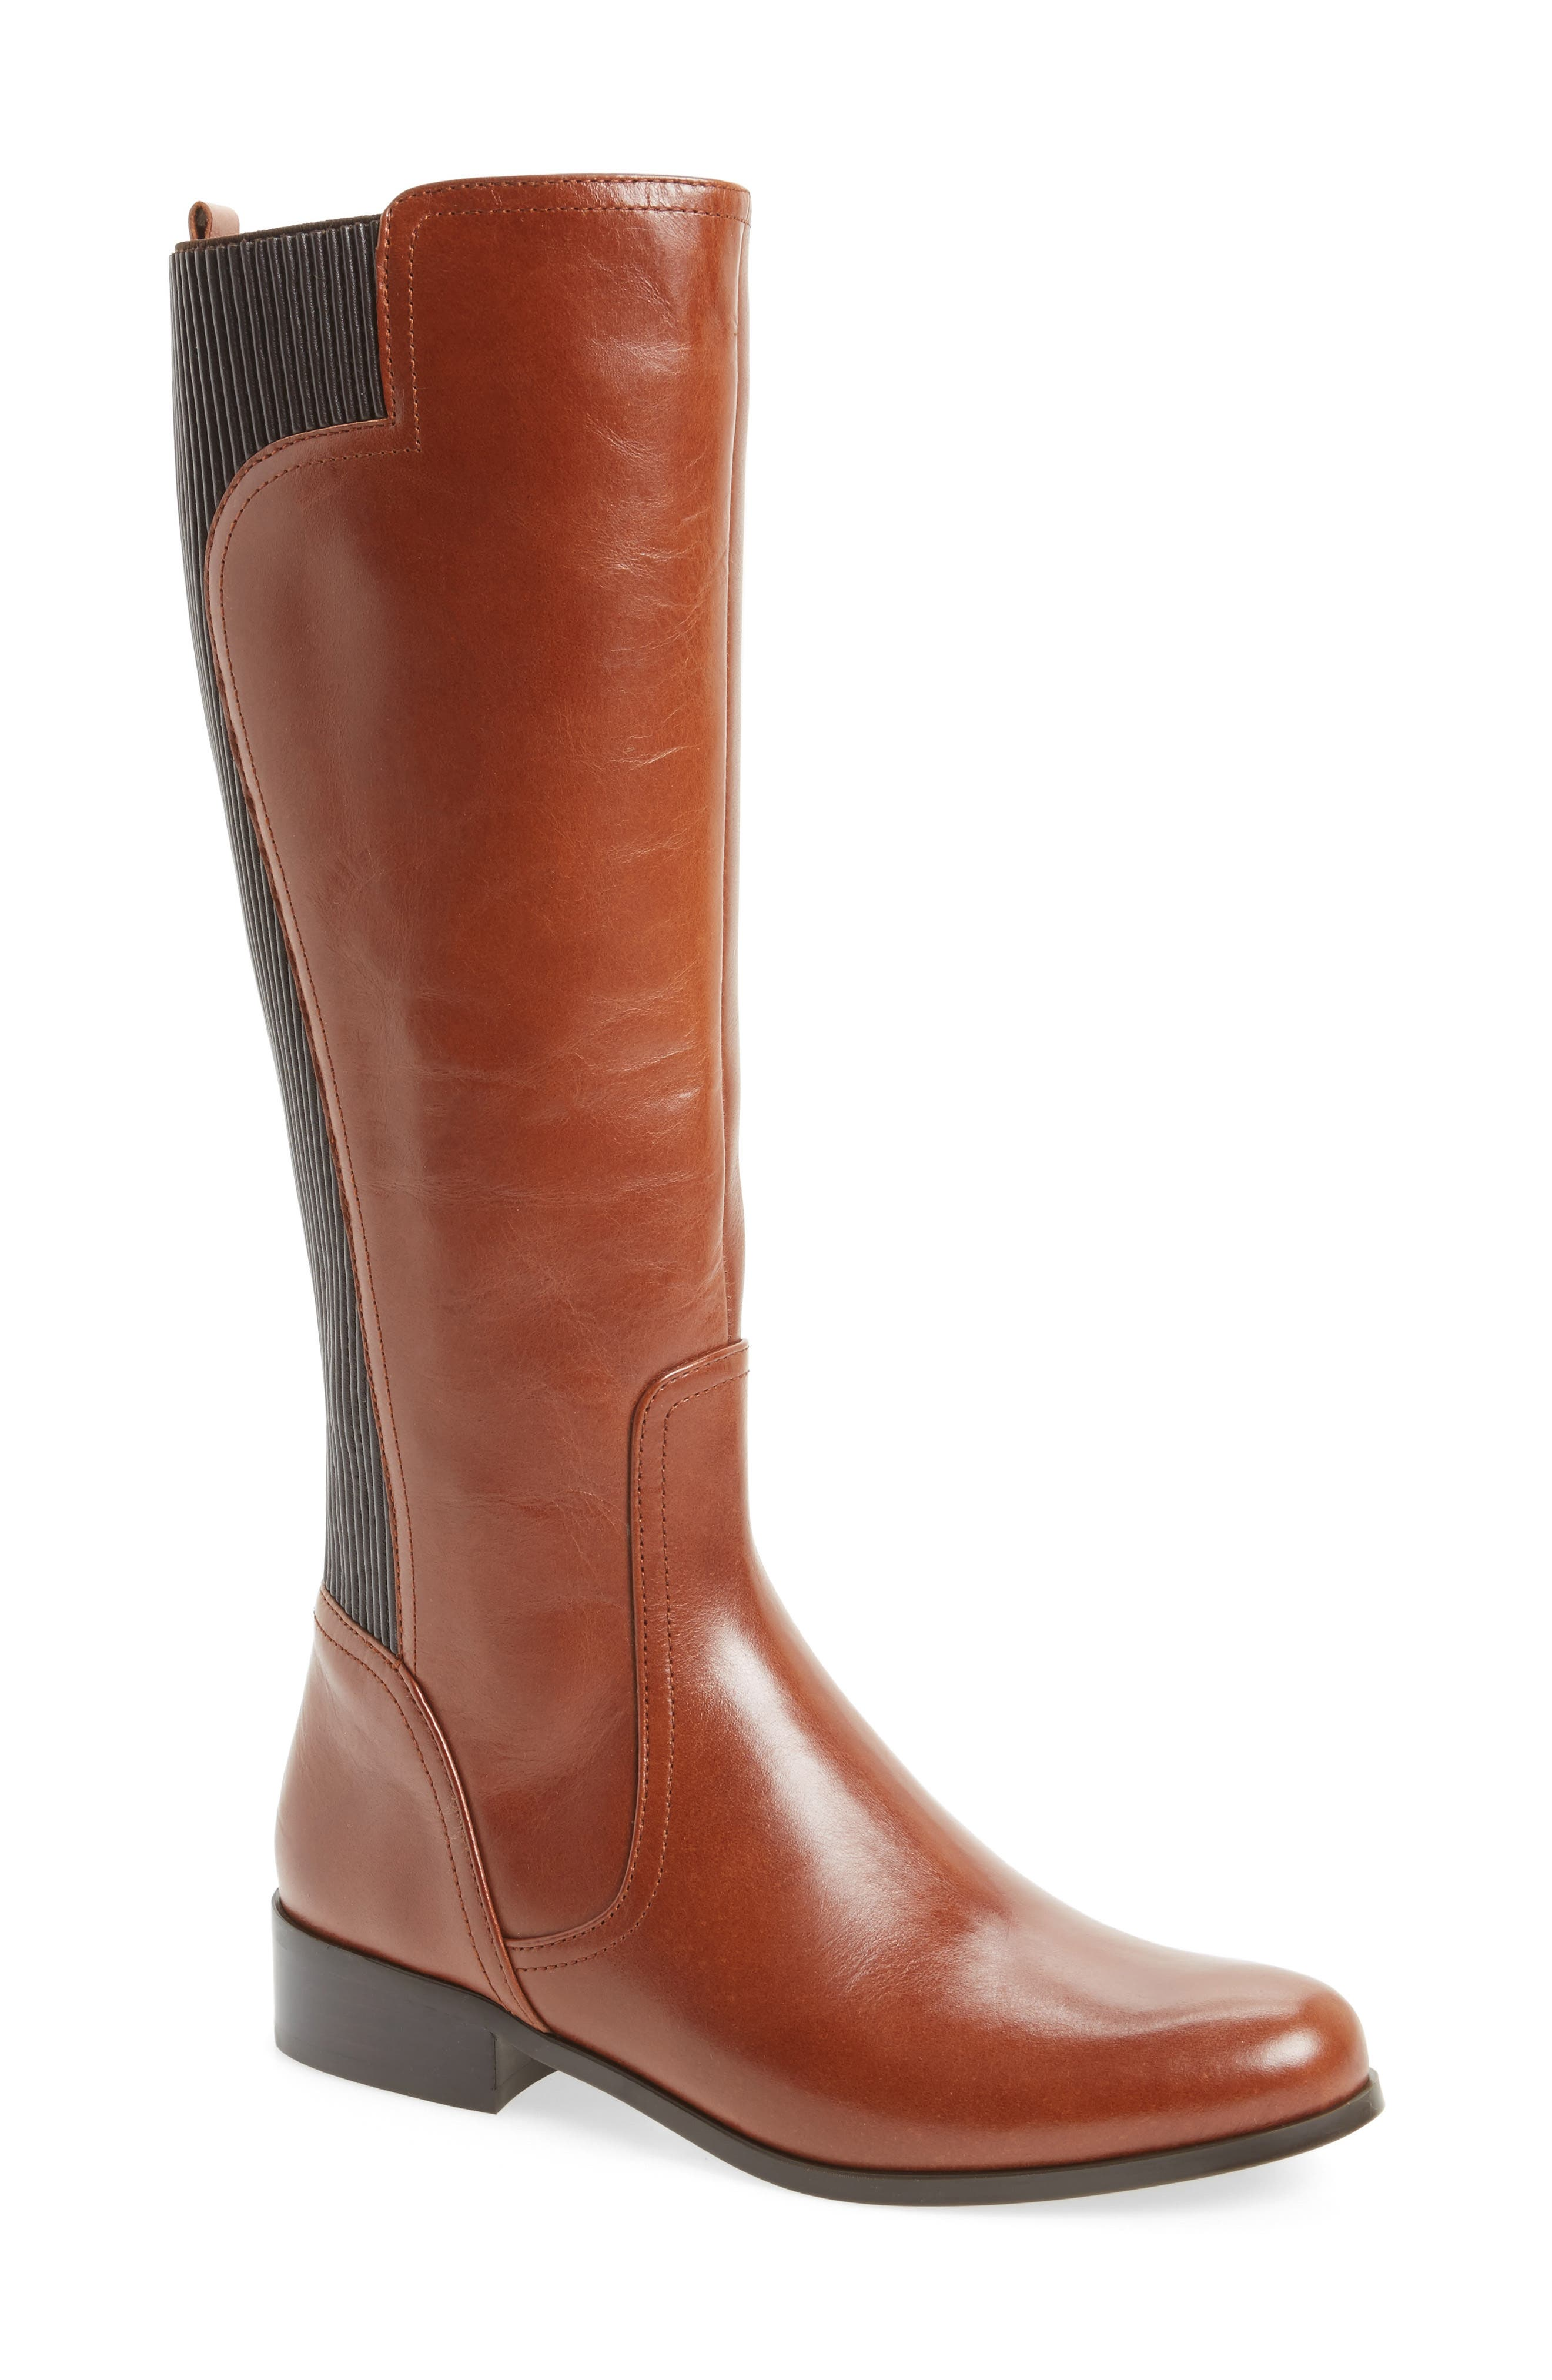 Rebel Tall Boot,                             Main thumbnail 1, color,                             Tan Leather